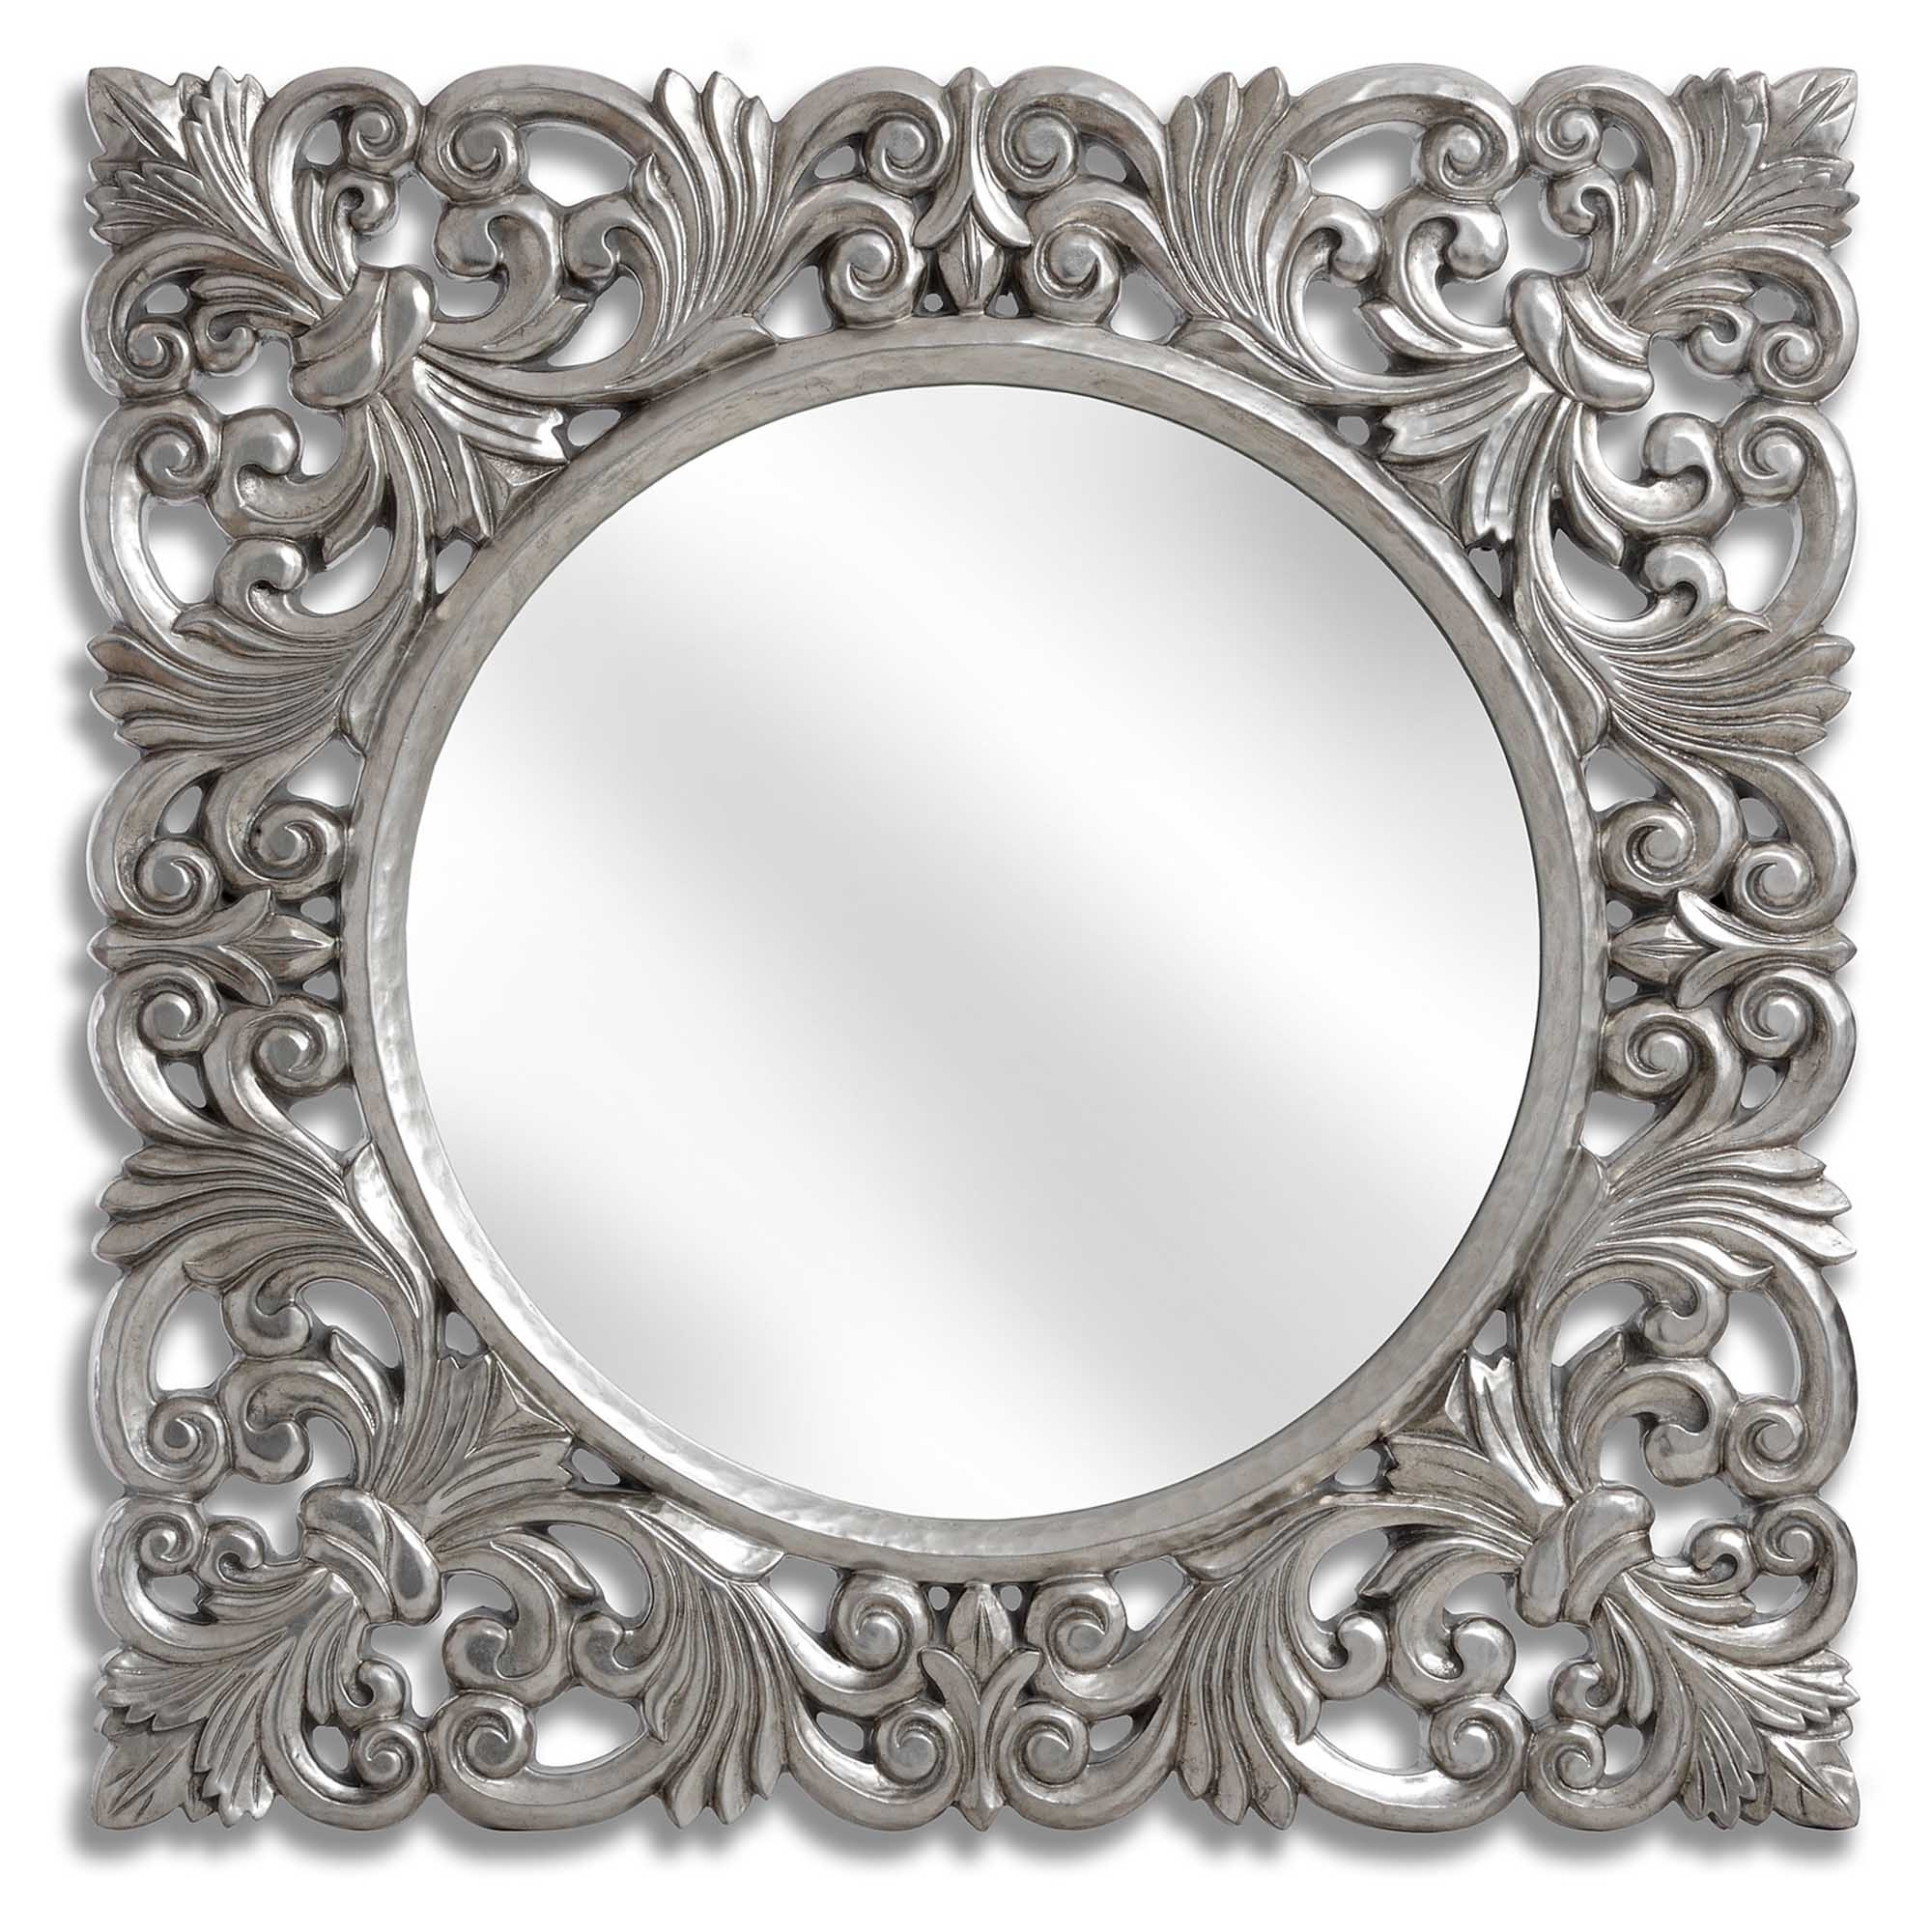 Antique Silver Wall Mirrors Within Trendy Baroque Antique French Style Silver Wall Mirror (Gallery 5 of 20)